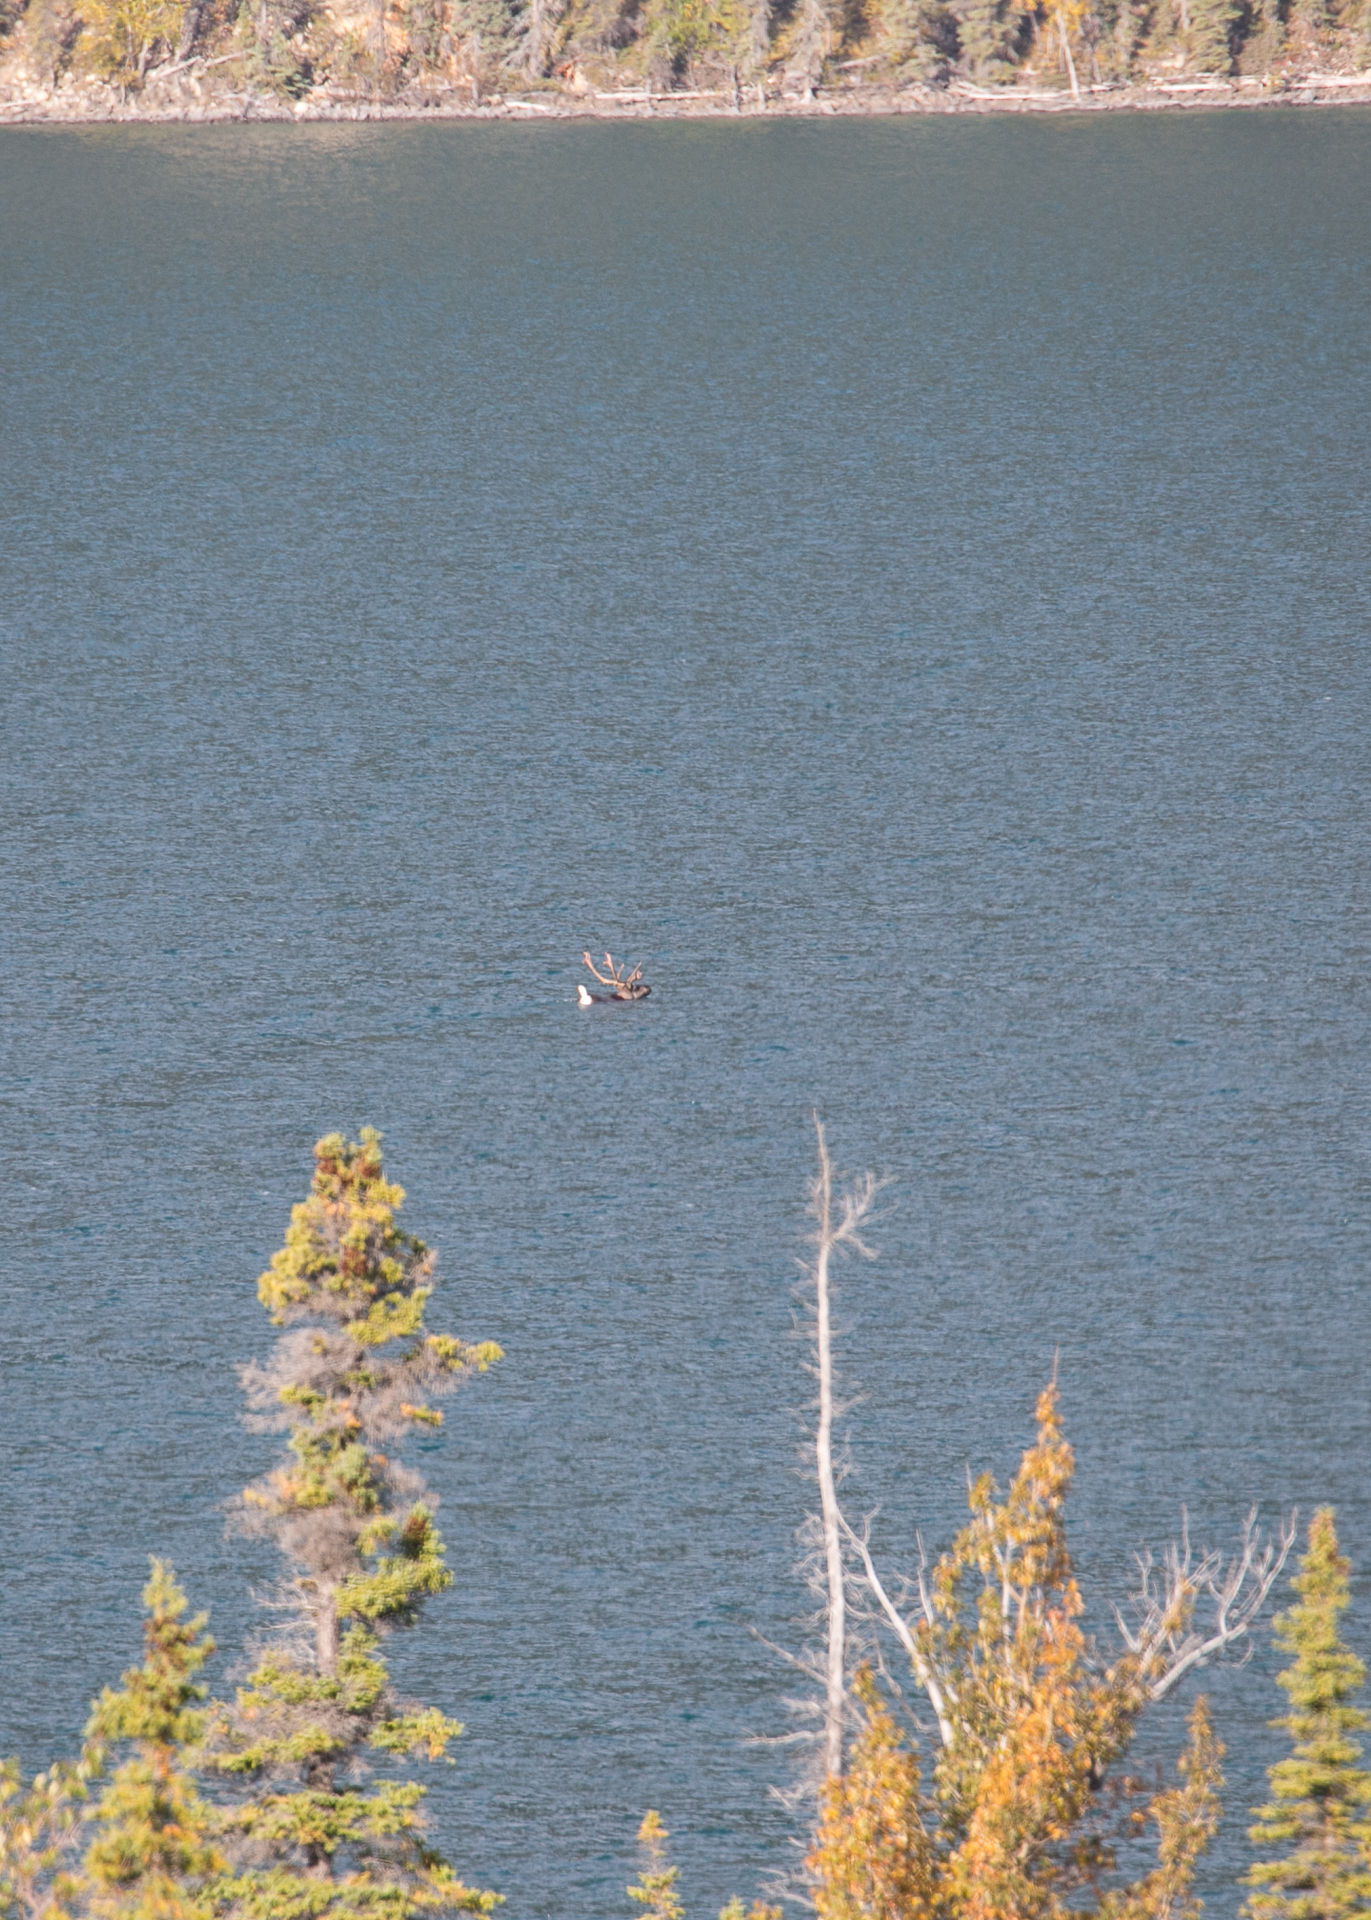 From a distance, it was hard to tell what was swimming across the very big lake.